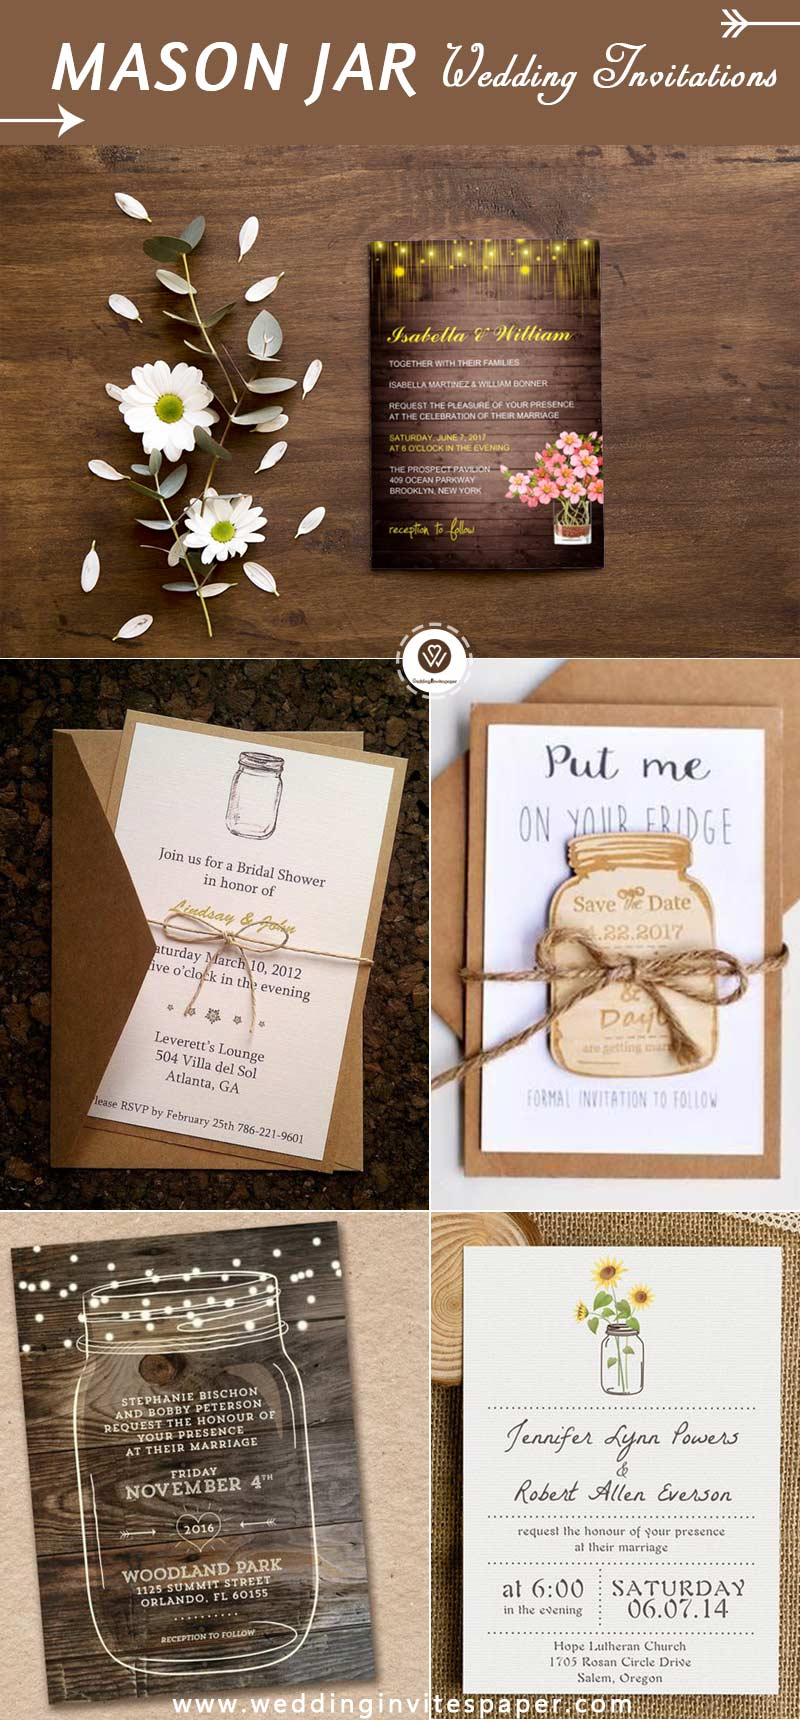 MASON-JAR-Wedding-Invitations.jpg